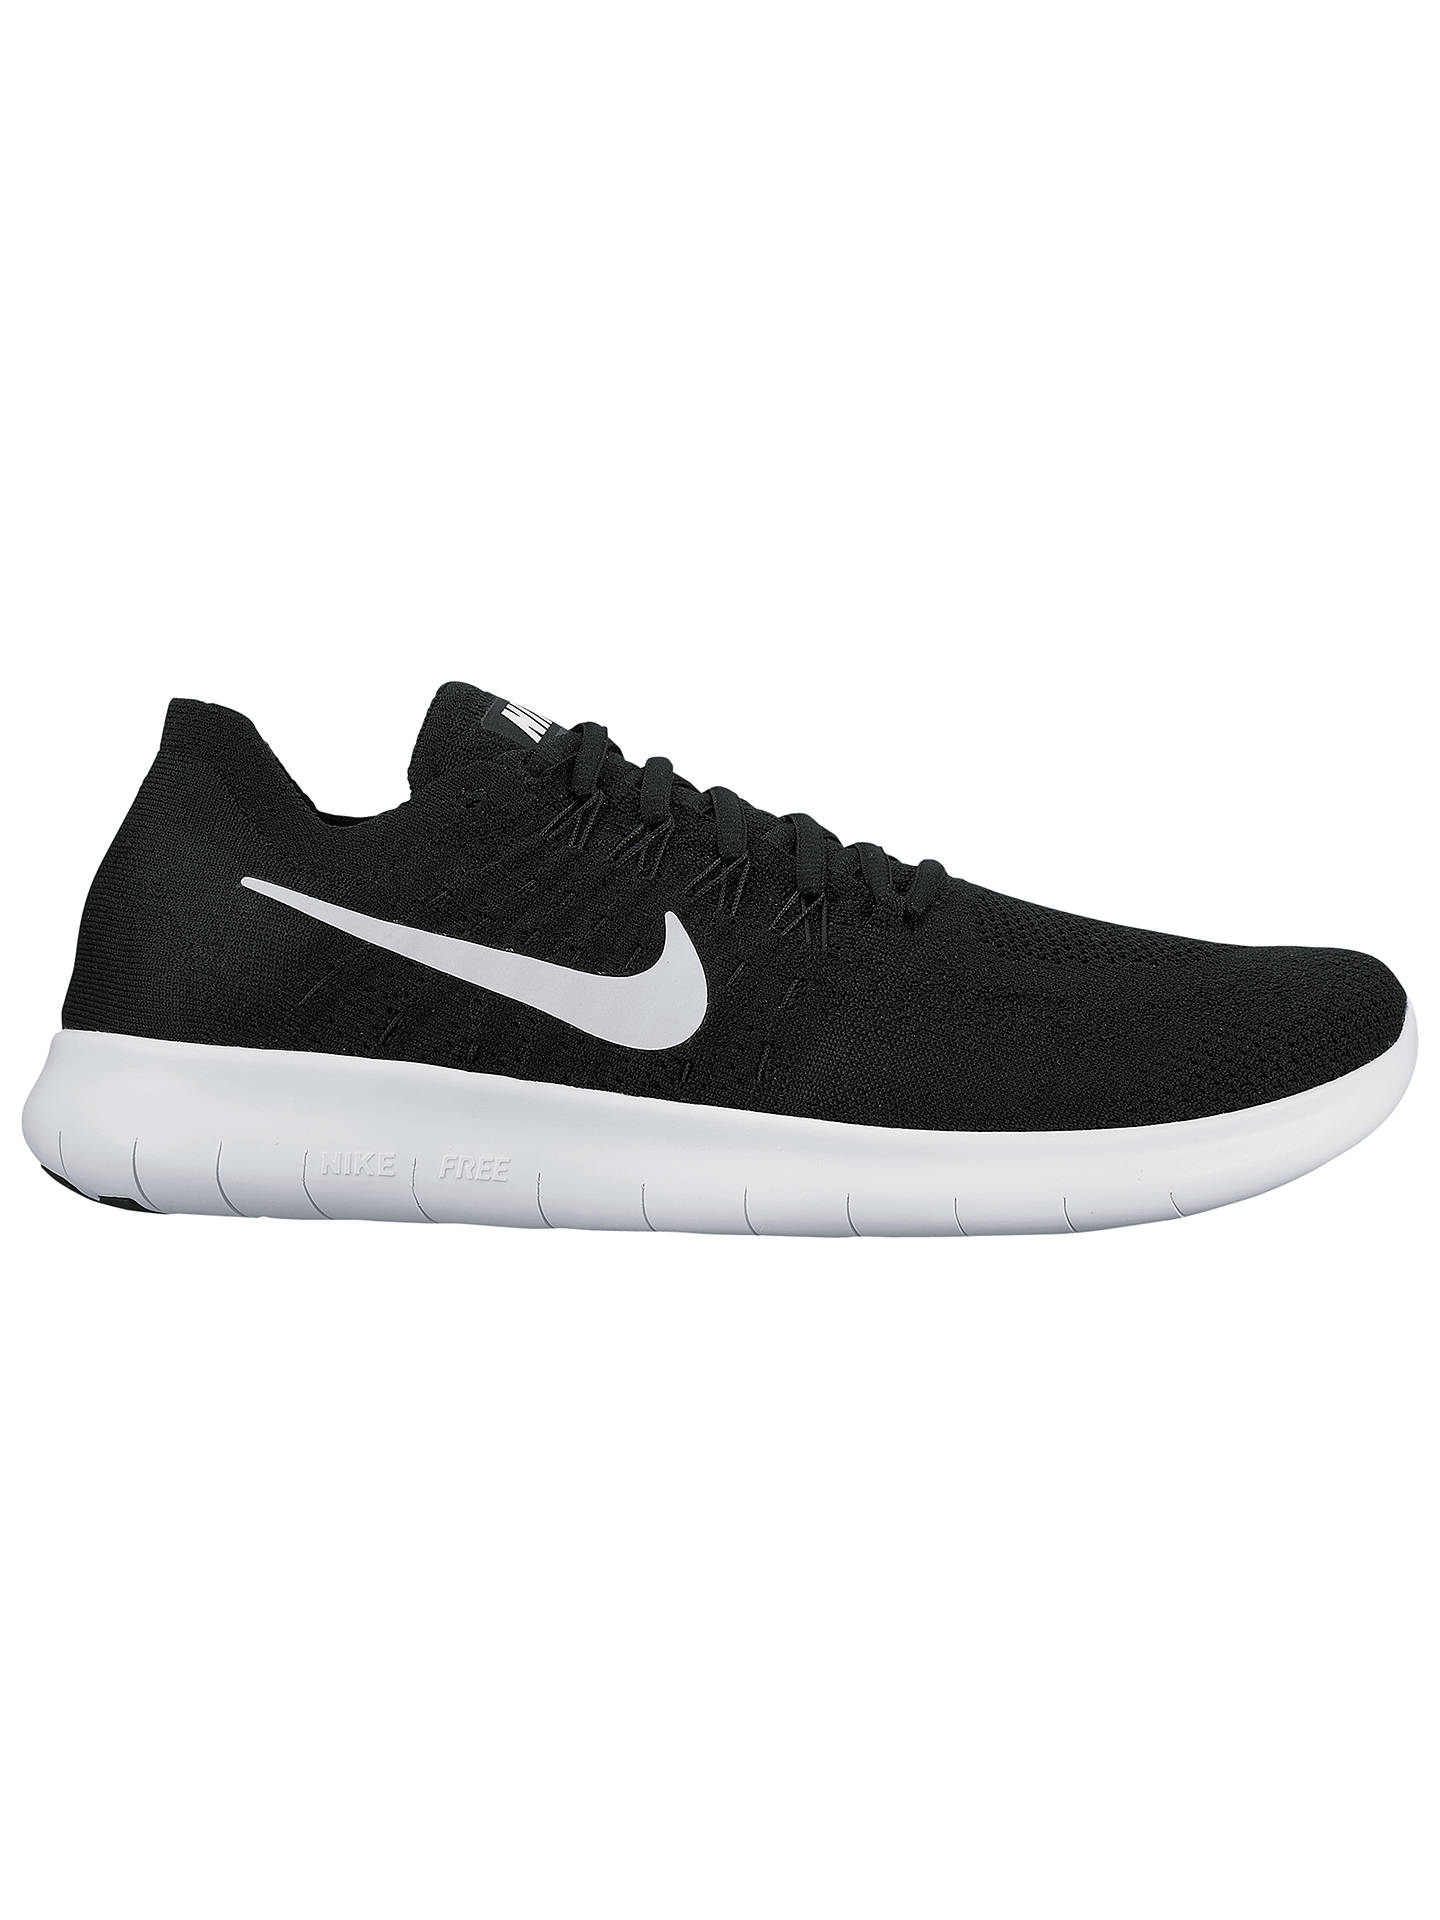 adf47d05b95a6 Buy Nike Free RN Flyknit 2017 Men s Running Shoes